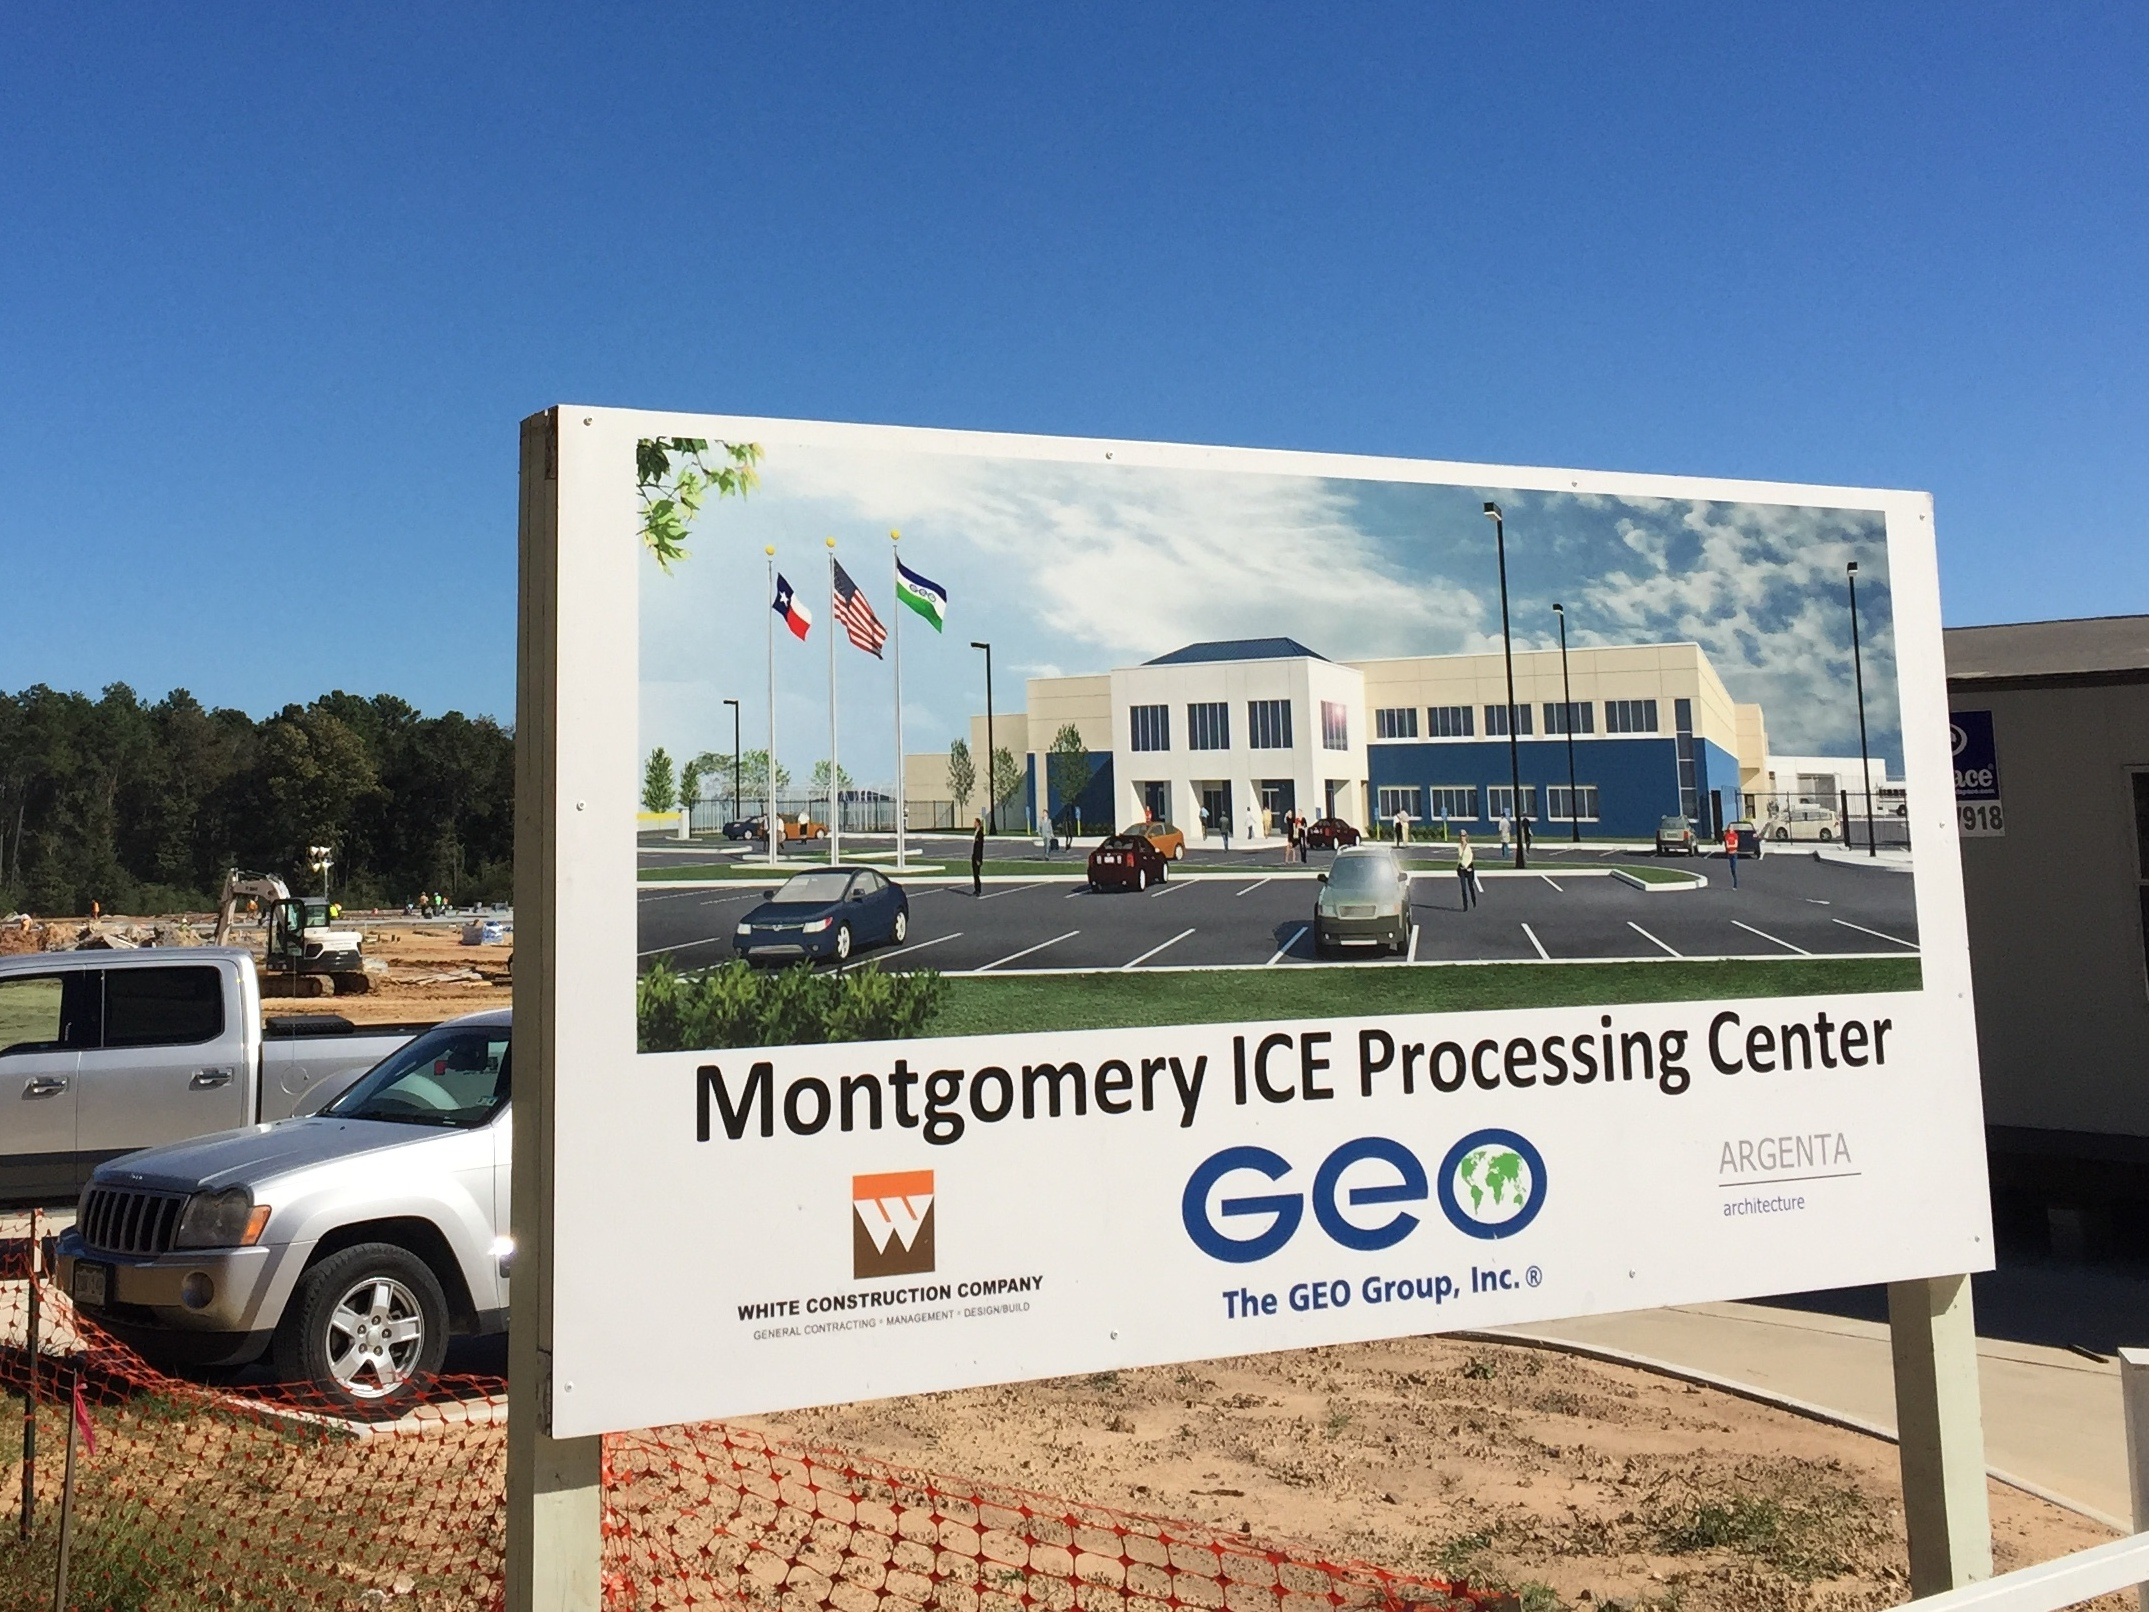 A new Immigration and Customs Enforcement detention facility on this site in Conroe, Texas, will house up to 1,000 immigrants at a cost of $44 million a year to U.S. taxpayers.